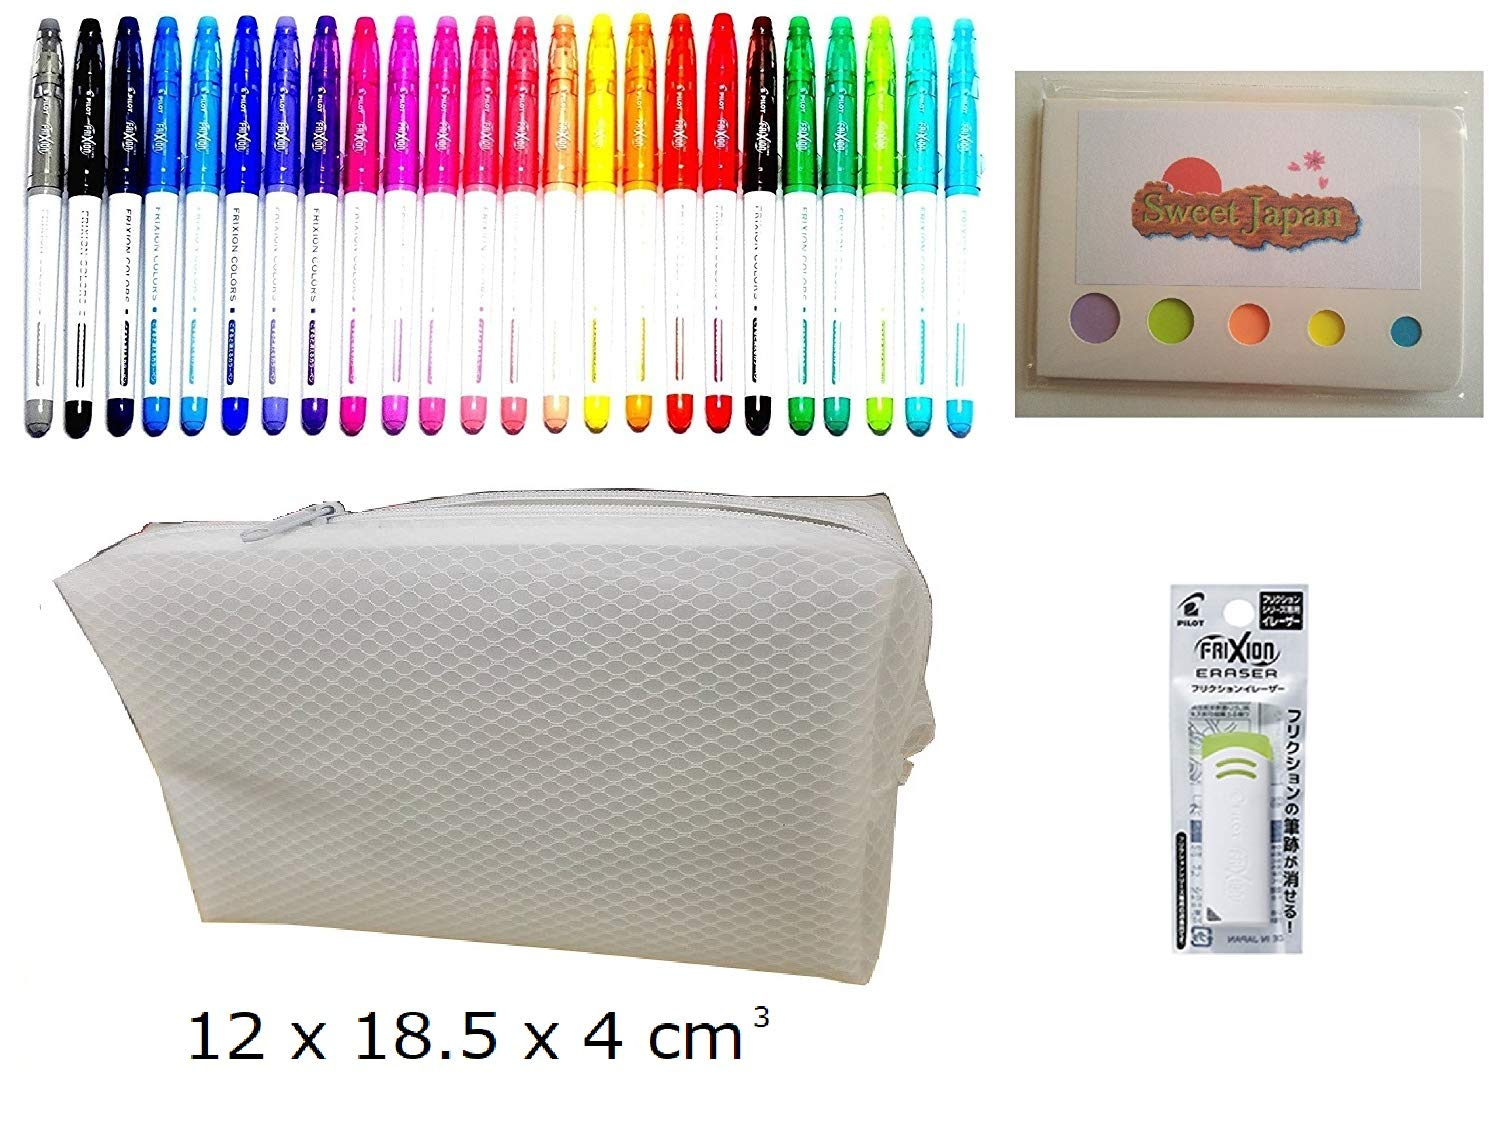 Pilot FriXion Colors Erasable Marker Pen, 24 colors set, individual eraser for Frixion, original sticky and pen case